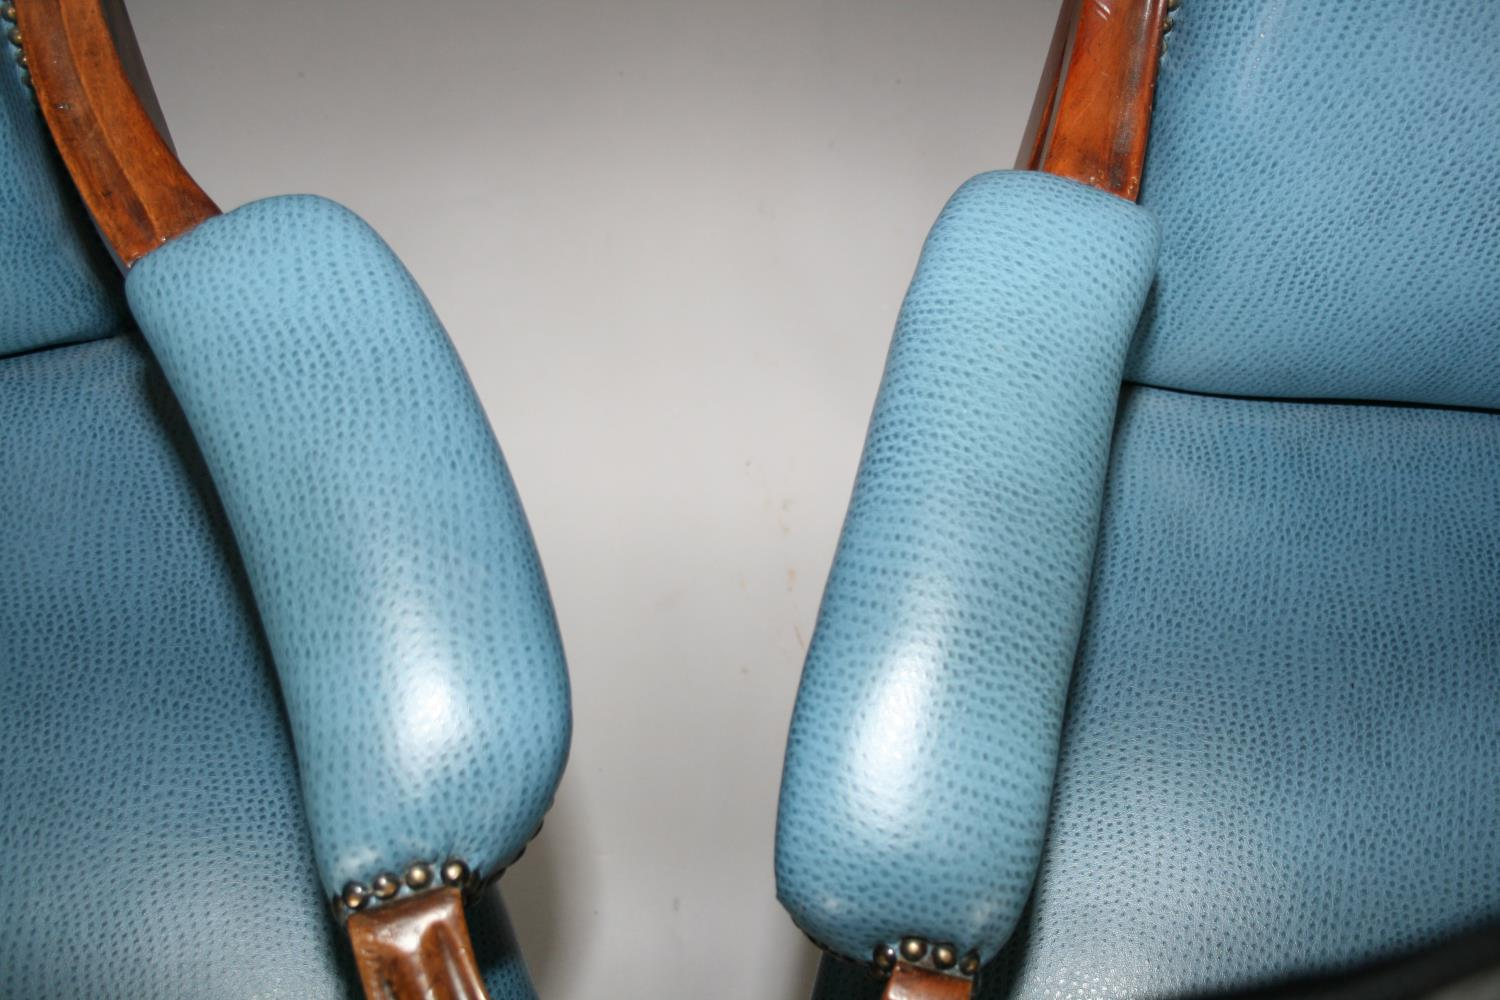 Near pair of Edwardian mahogany armchairs, with speckled hide upholstery. - Image 2 of 3